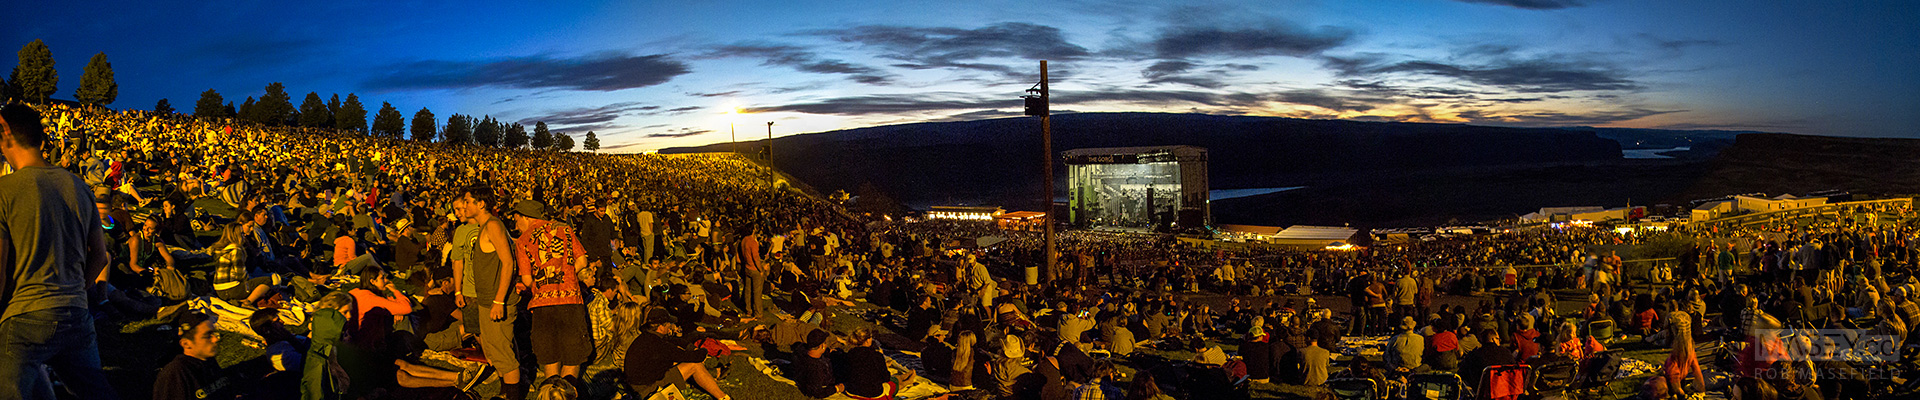 DMB's Saturday night show at The Gorge always draws a HUGE crowd.